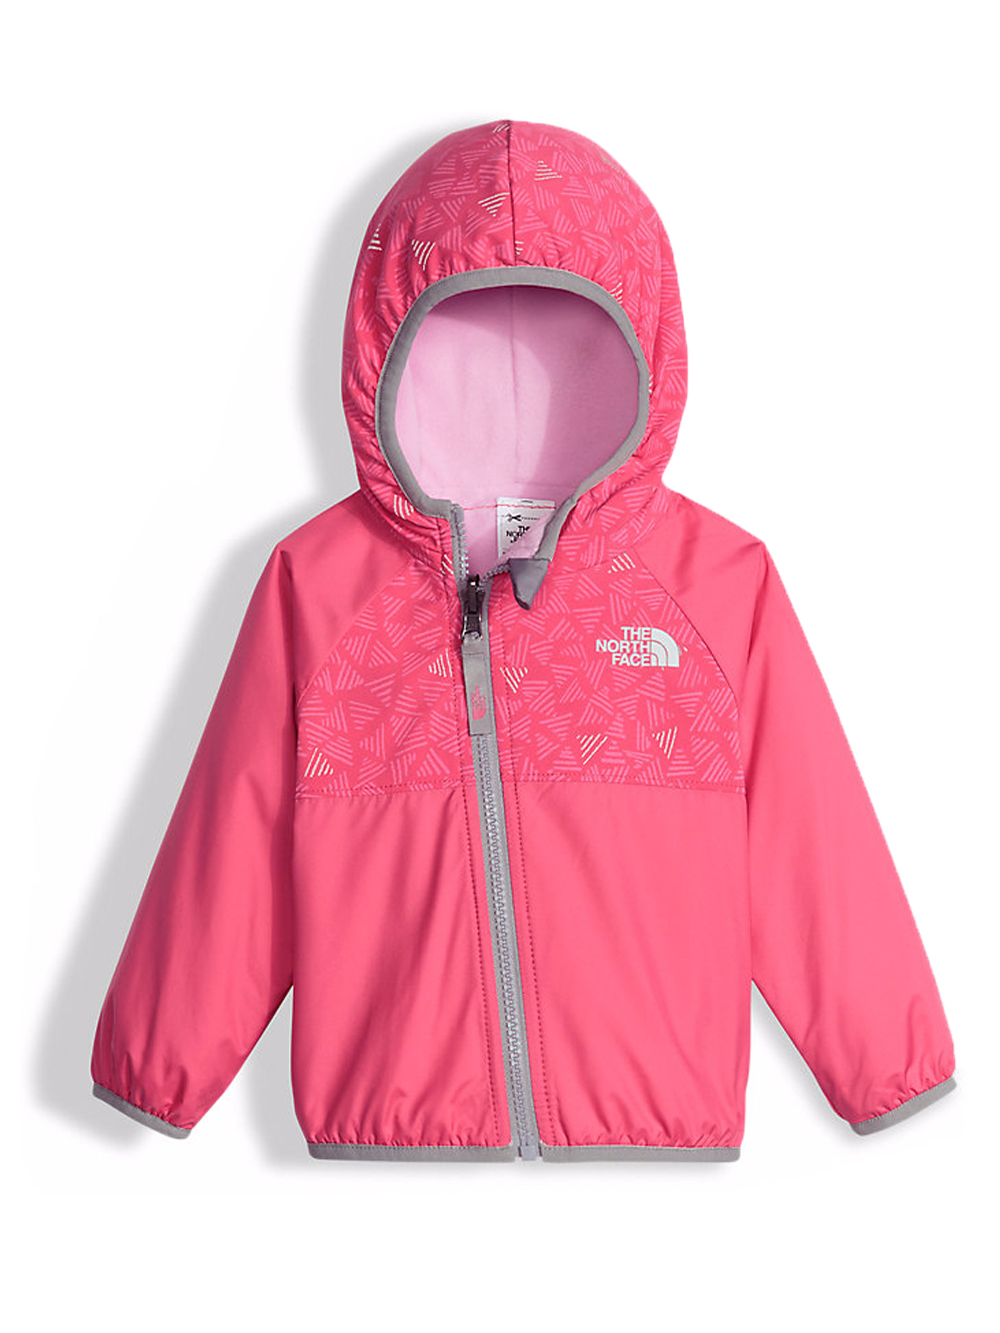 The North Face Baby Girls